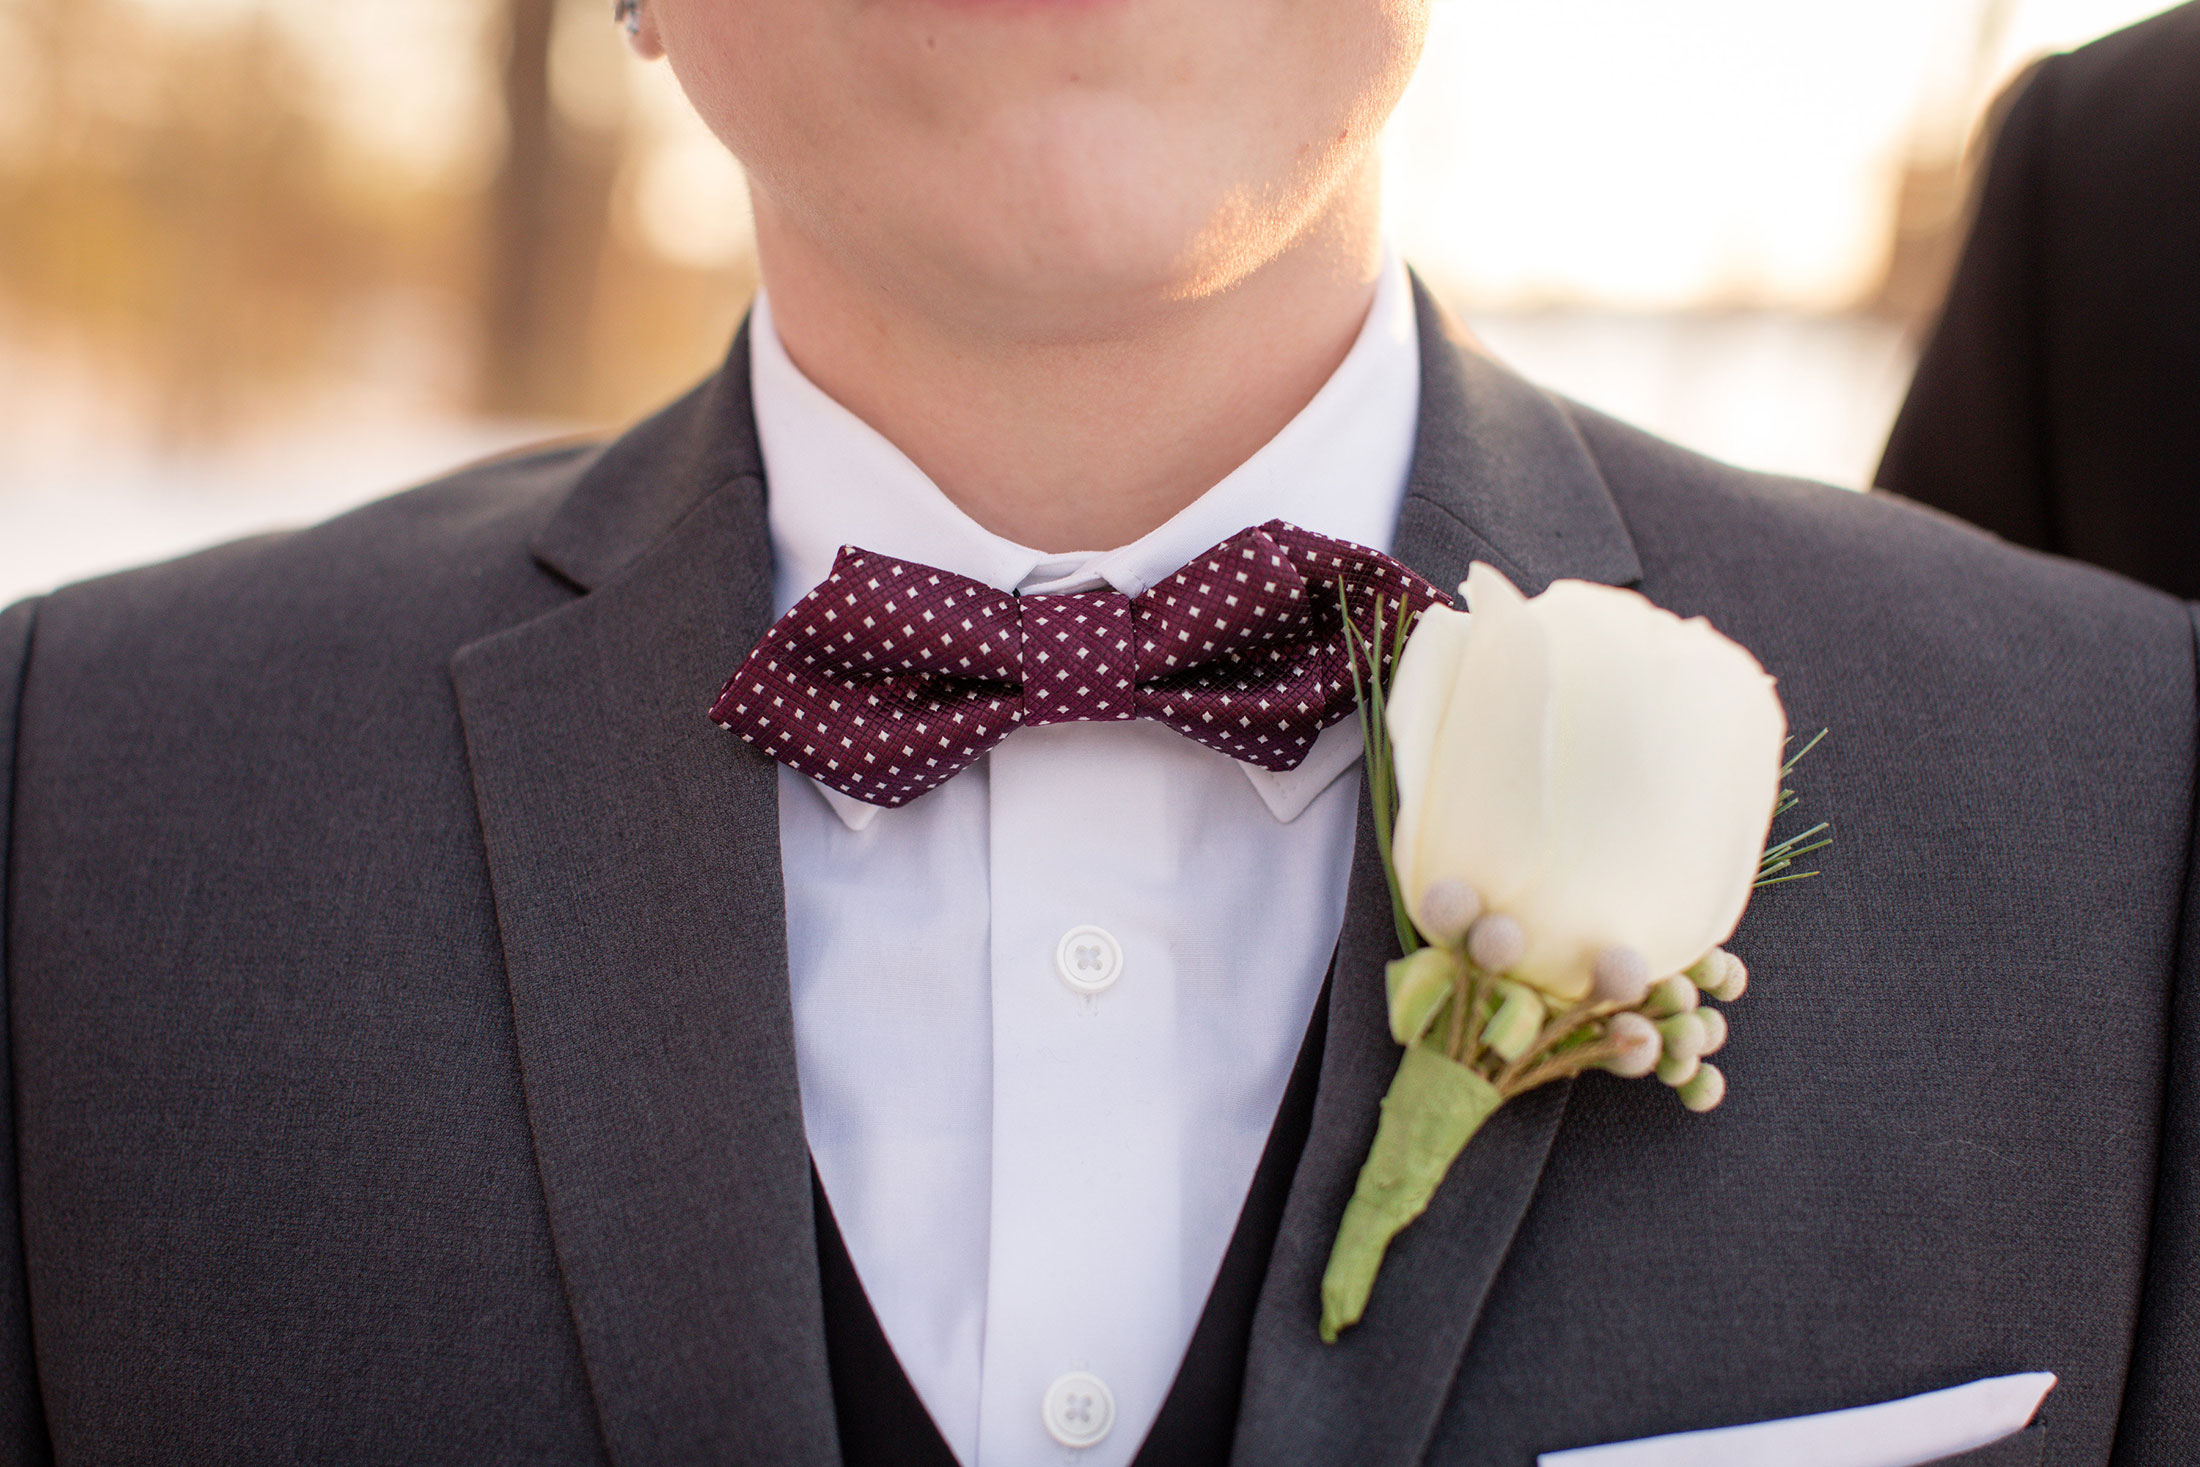 SEG_Bride wearing gray suit and polka dot bow tie